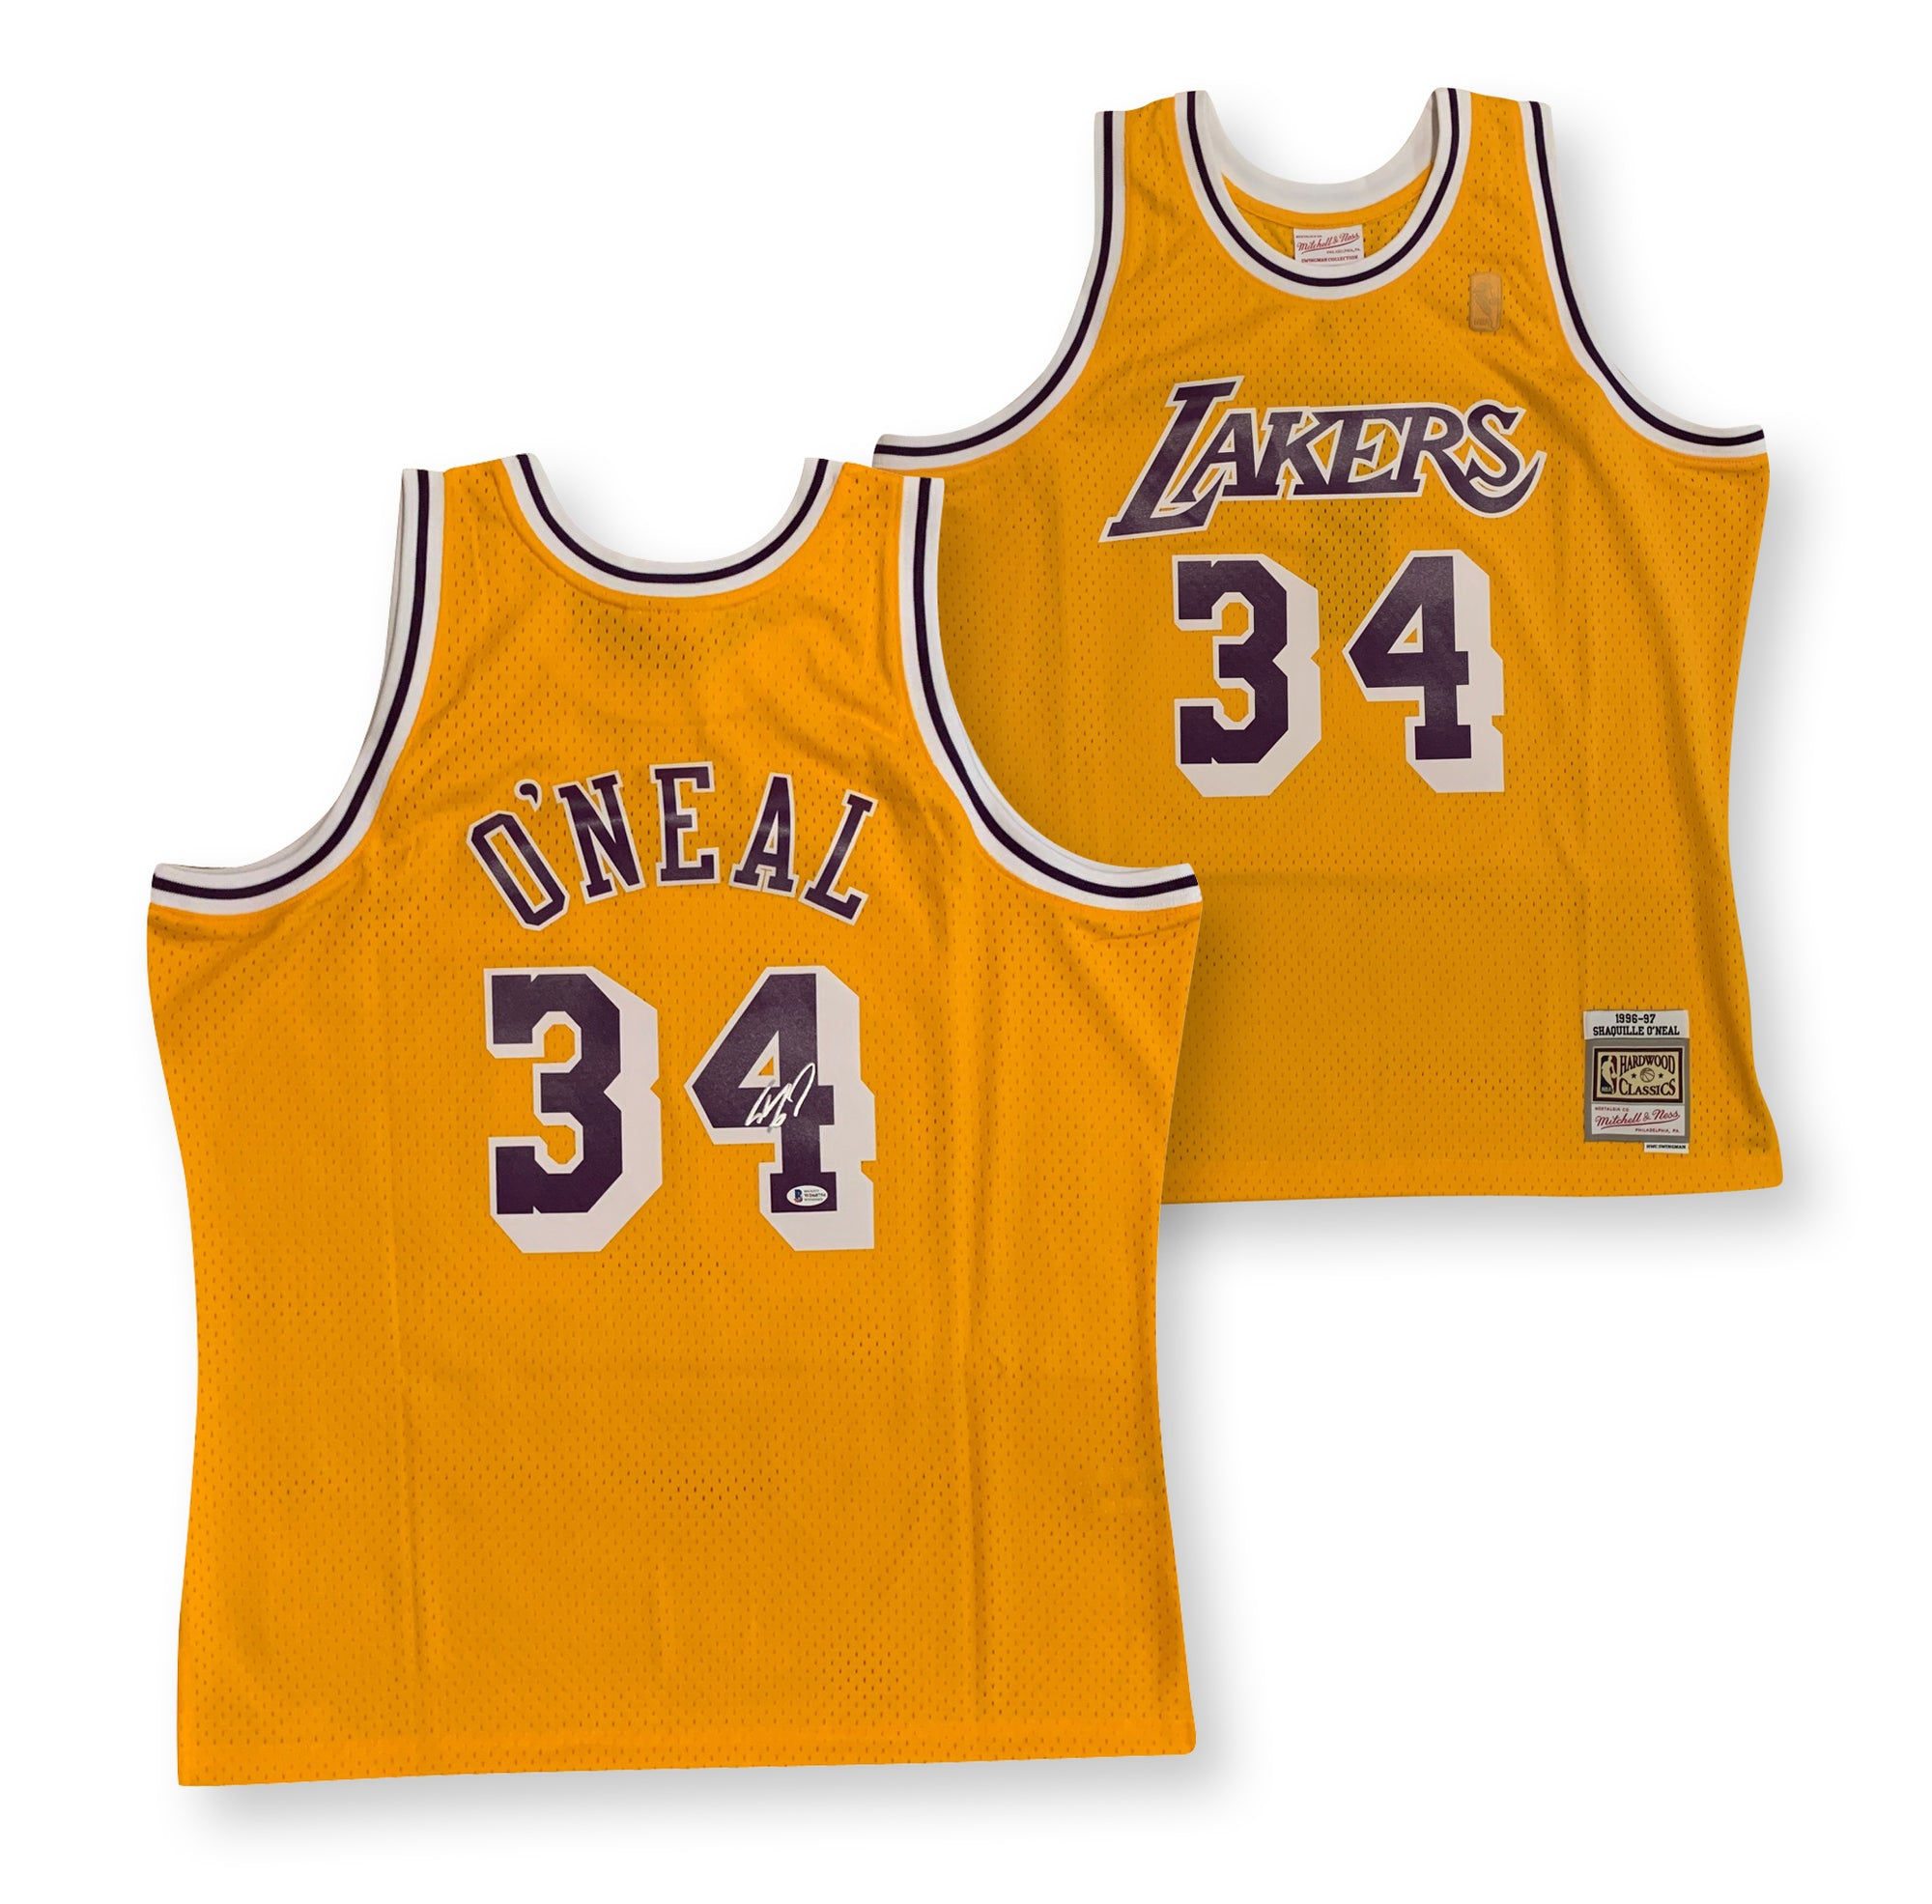 Shaquille O'Neal Autographed Los Angeles Lakers Officially Licensed Mitchell and Ness Swingman Signed 1996-1997 Basketball Gold Jersey Beckett BAS COA-Powers Sports Memorabilia